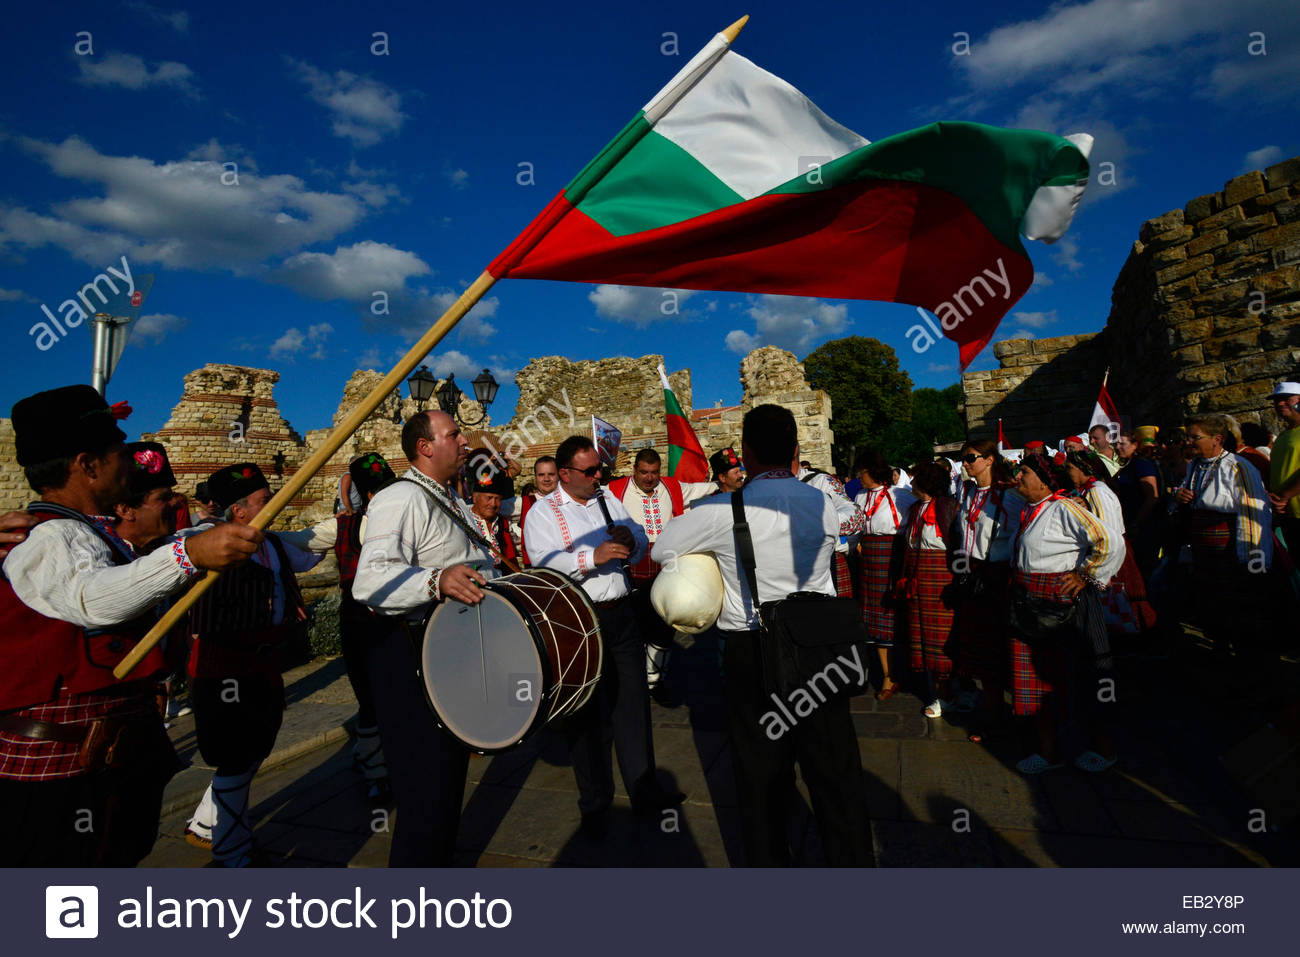 The Bulgarian delegation at the World Championship of Folklore. - Stock Image